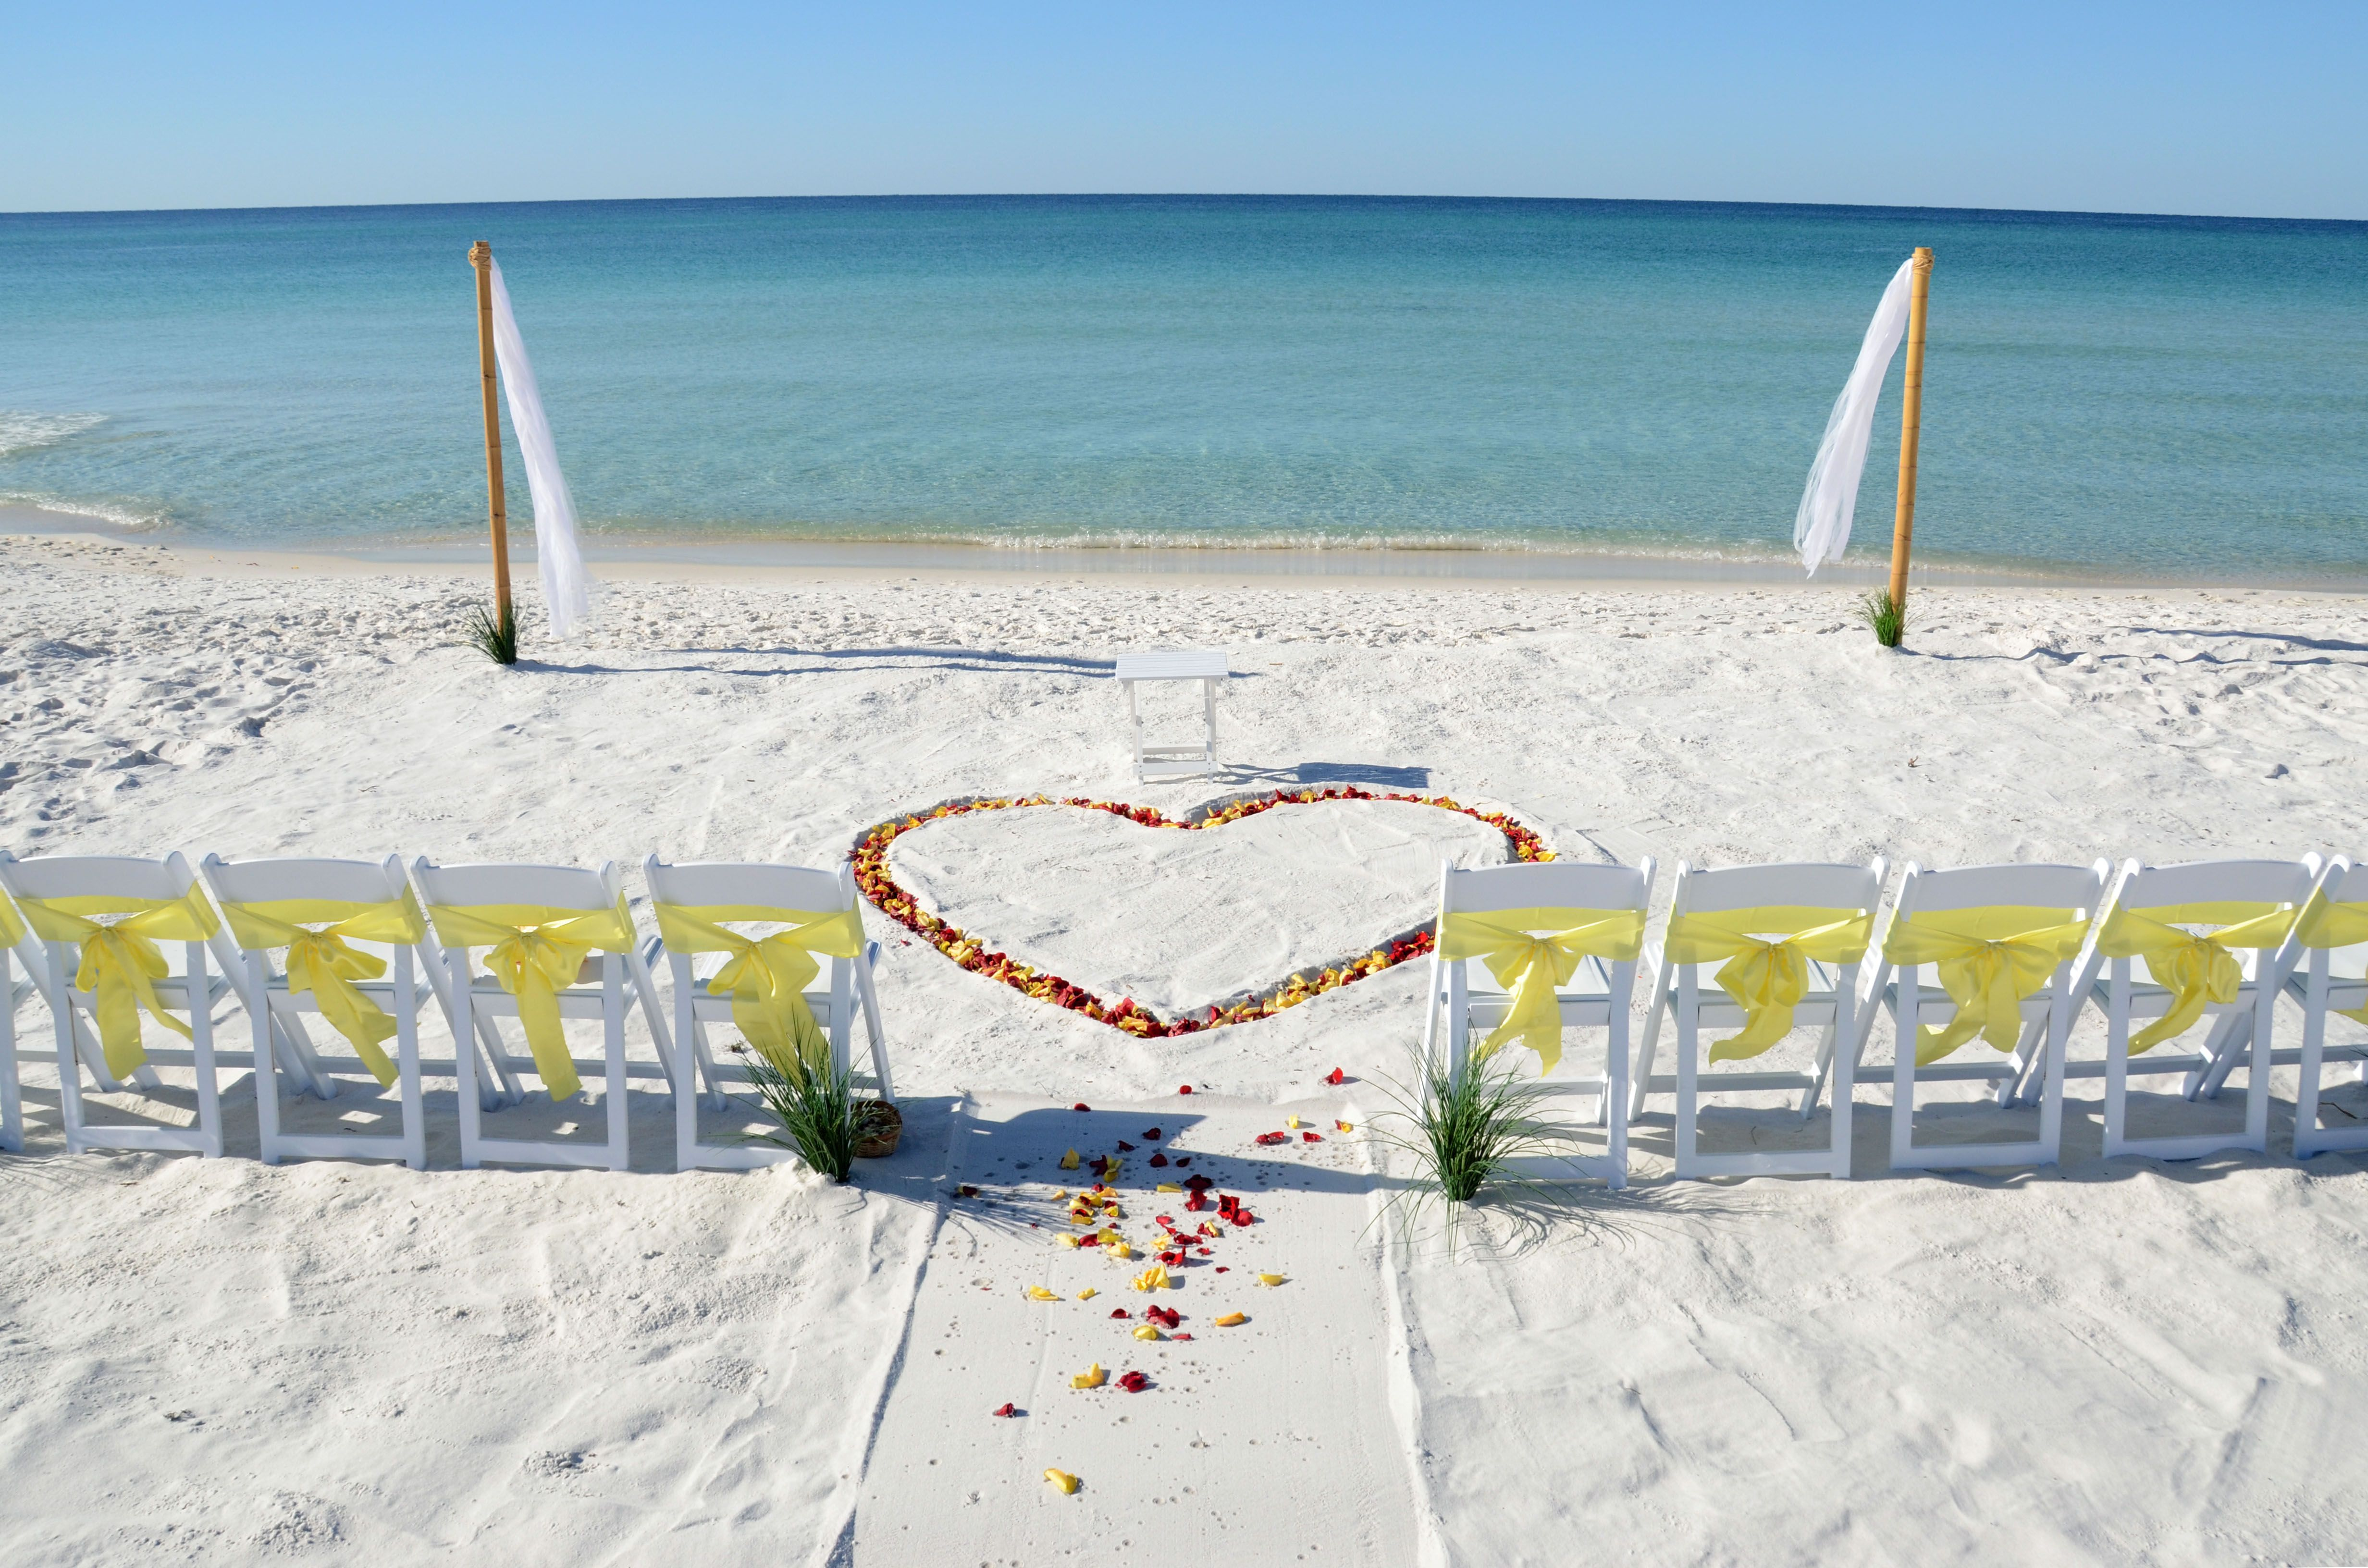 Beach weddings fort walton beach wedding packages sunset beach - Red And Yellow Rose Petals Form A Heart In The White Sand Of This Seagrove Beach Sunset Beach Weddingsbeach